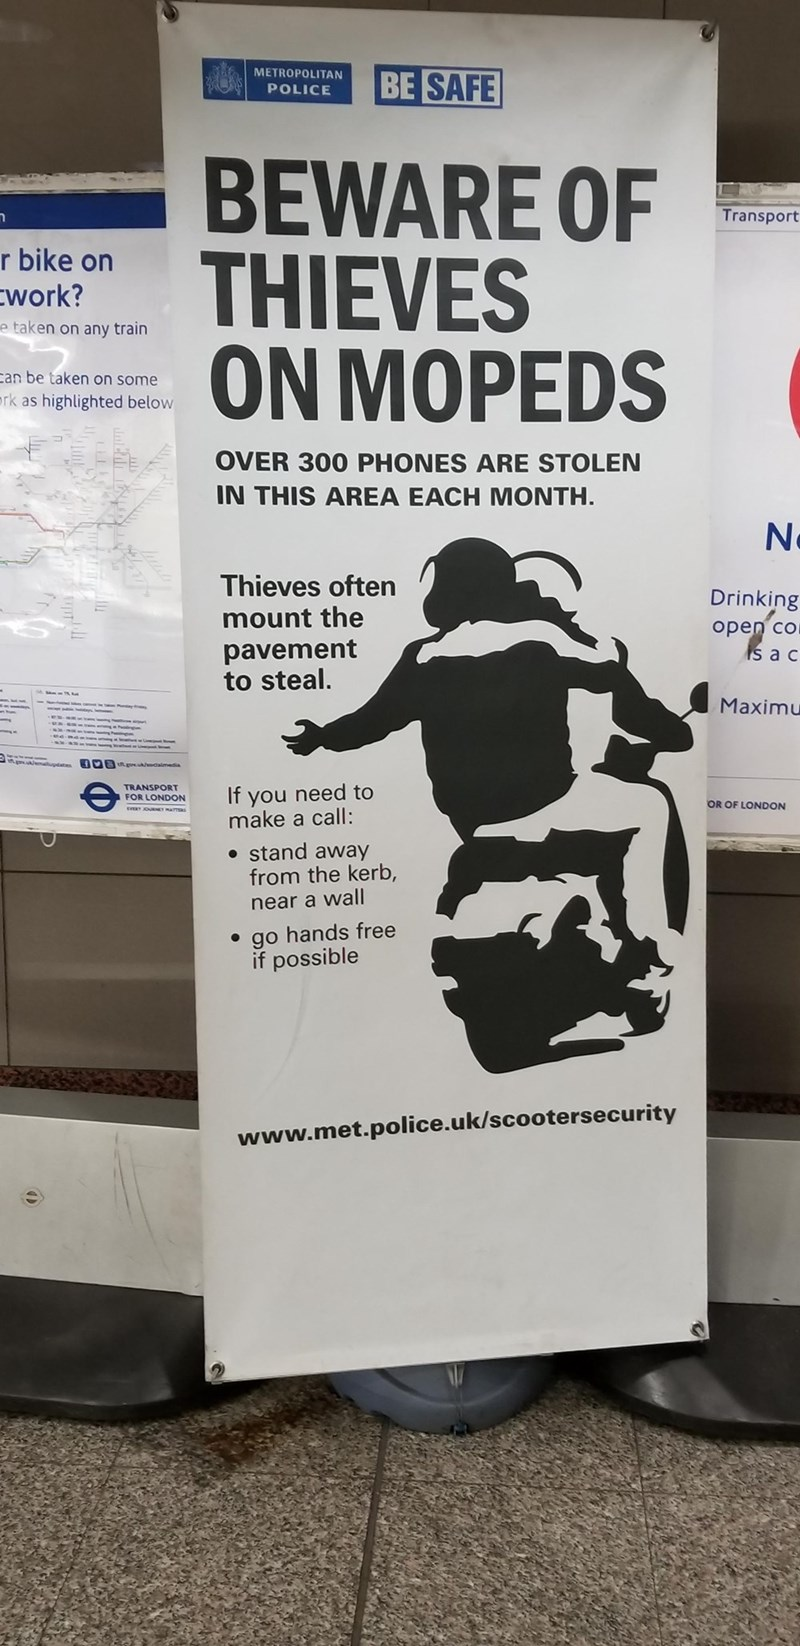 Poster - METROPOLITAN BE SAFE POLICE BEWARE OF THIEVES ON MOPEDS Transport r bike on work? e taken on any train can be taken on some ork as highlighted below OVER 300 PHONES ARE STOLEN IN THIS AREA EACH MONTH N Thieves often Drinking mount the оpen co s a c pavement to steal. Maximu f go imedia If you need to make a call: TRANSPORT FOR LONDON OR OF LONDON stand away from the kerb, near a wall go hands free if possible www.met.police.uk/scootersecurity